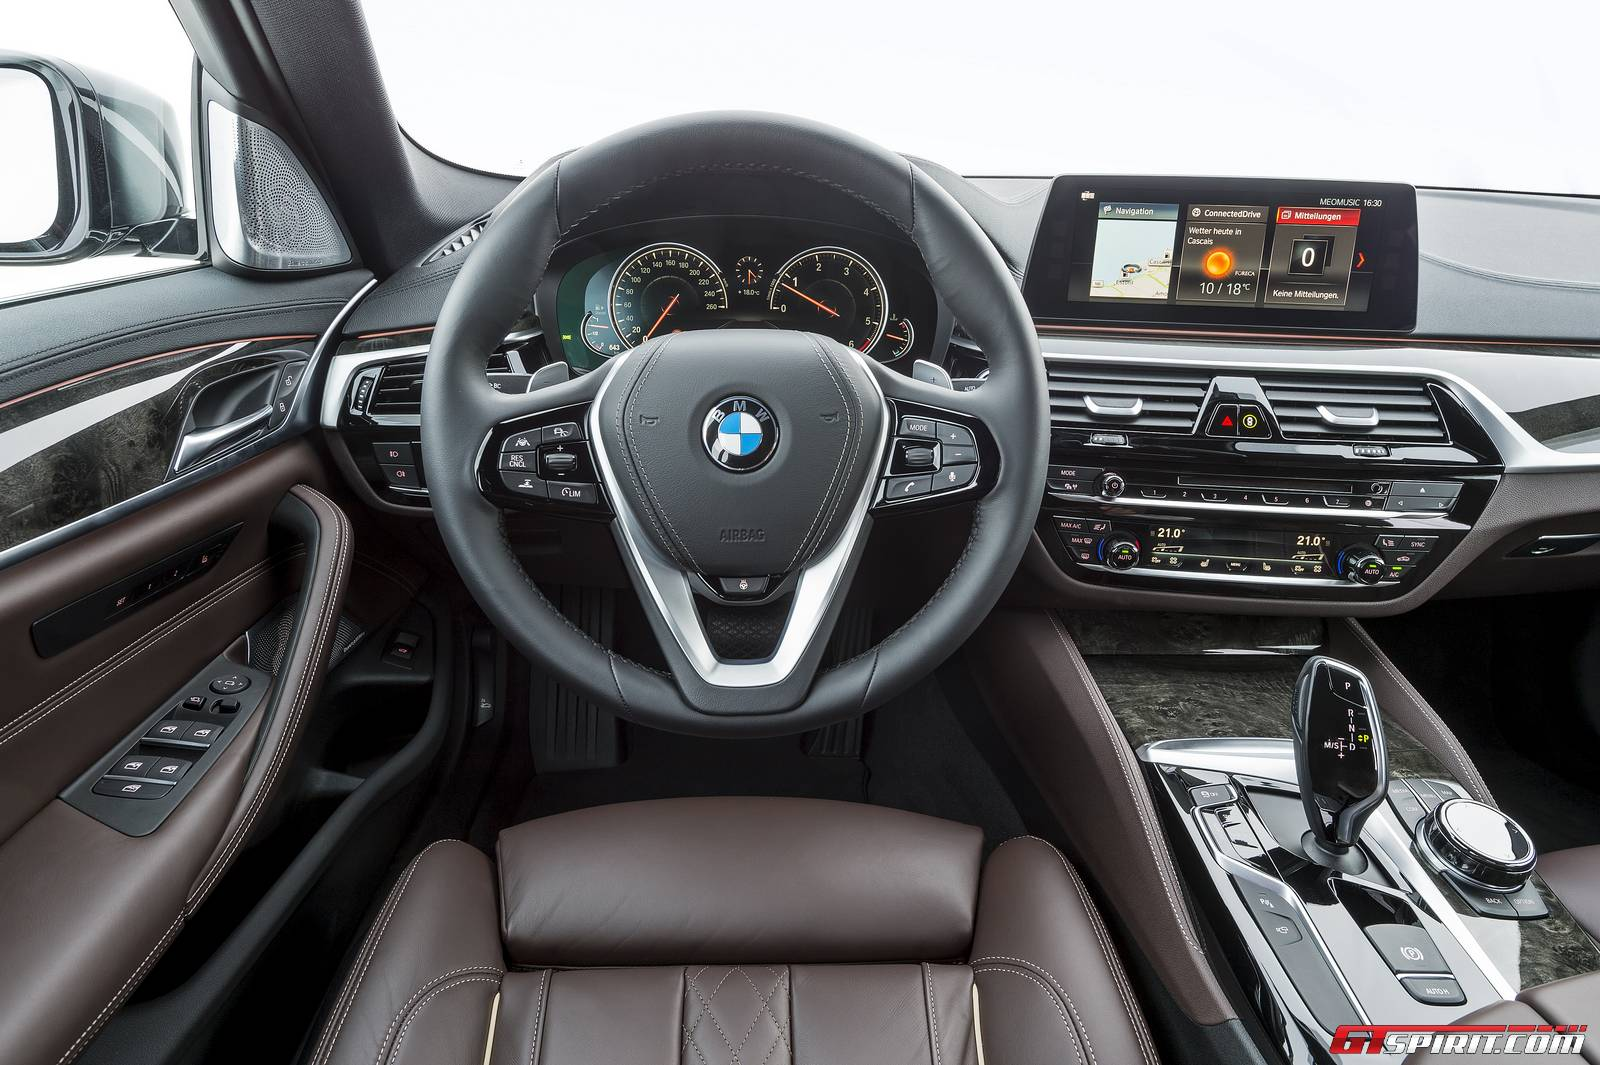 BMW 530d Review The New BMW 5 Series G30